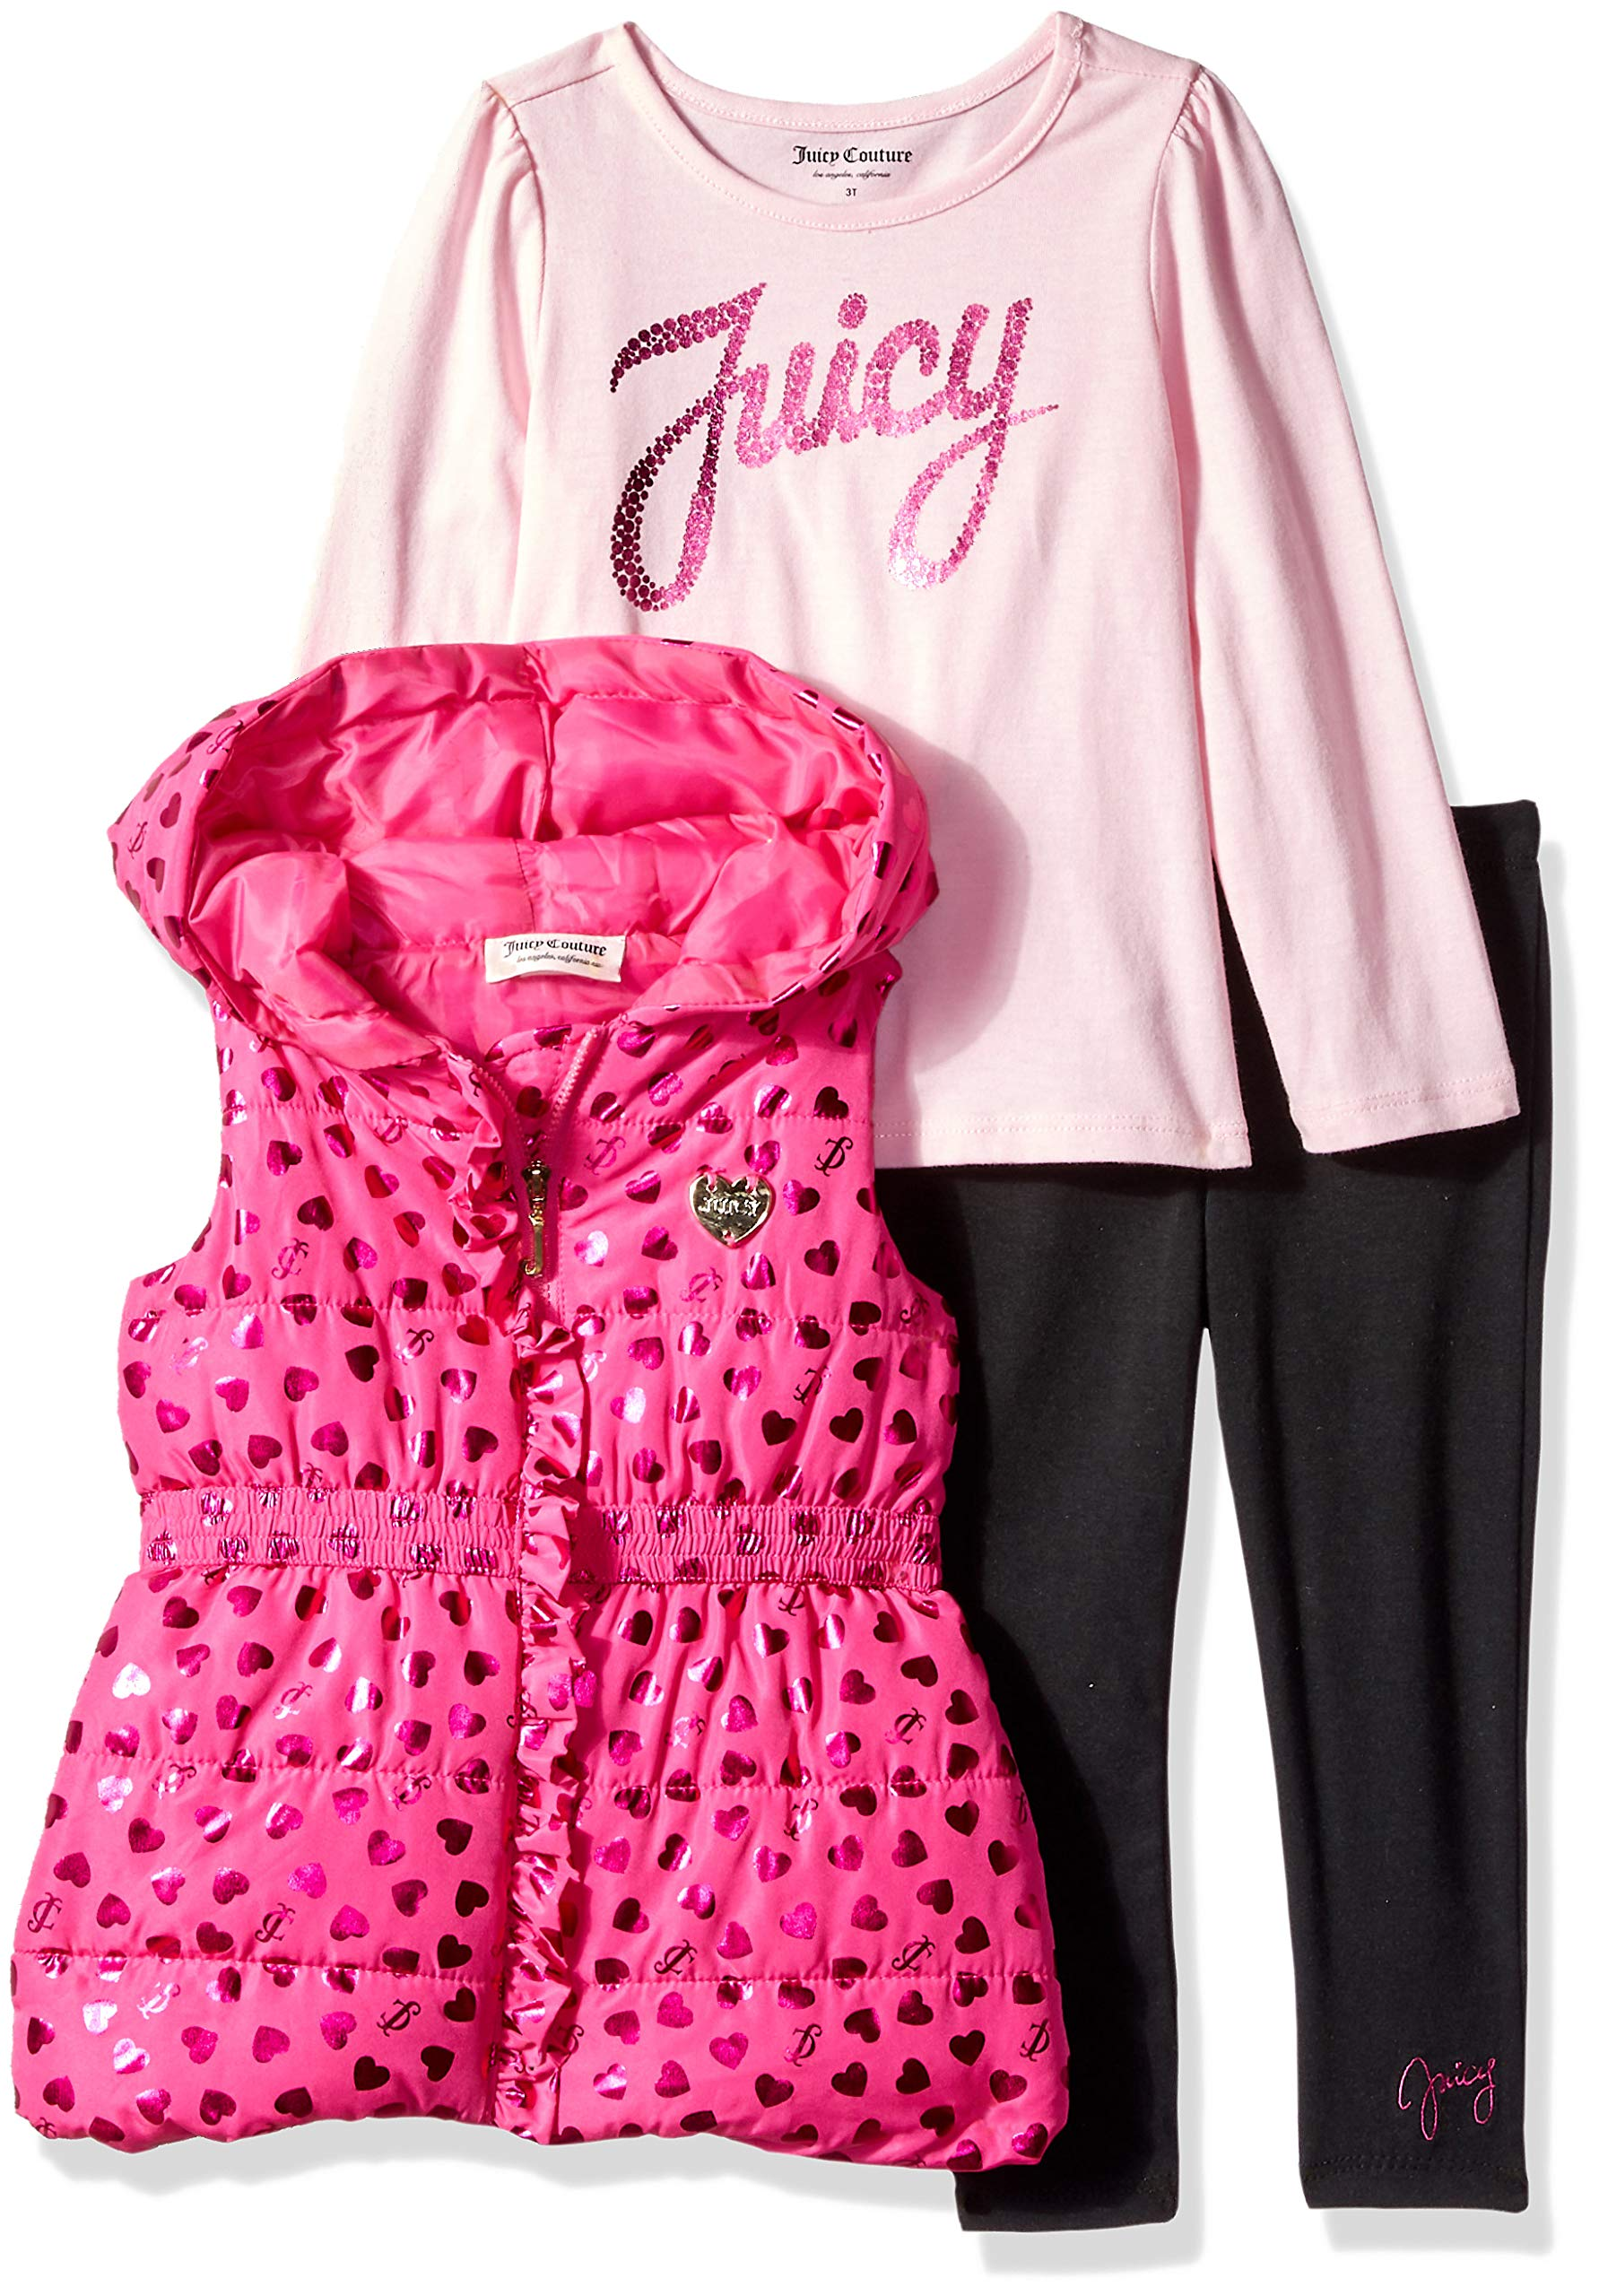 Juicy Couture Girls' Little 3 Pieces Puff Vest Set, hot Pink/Black 4